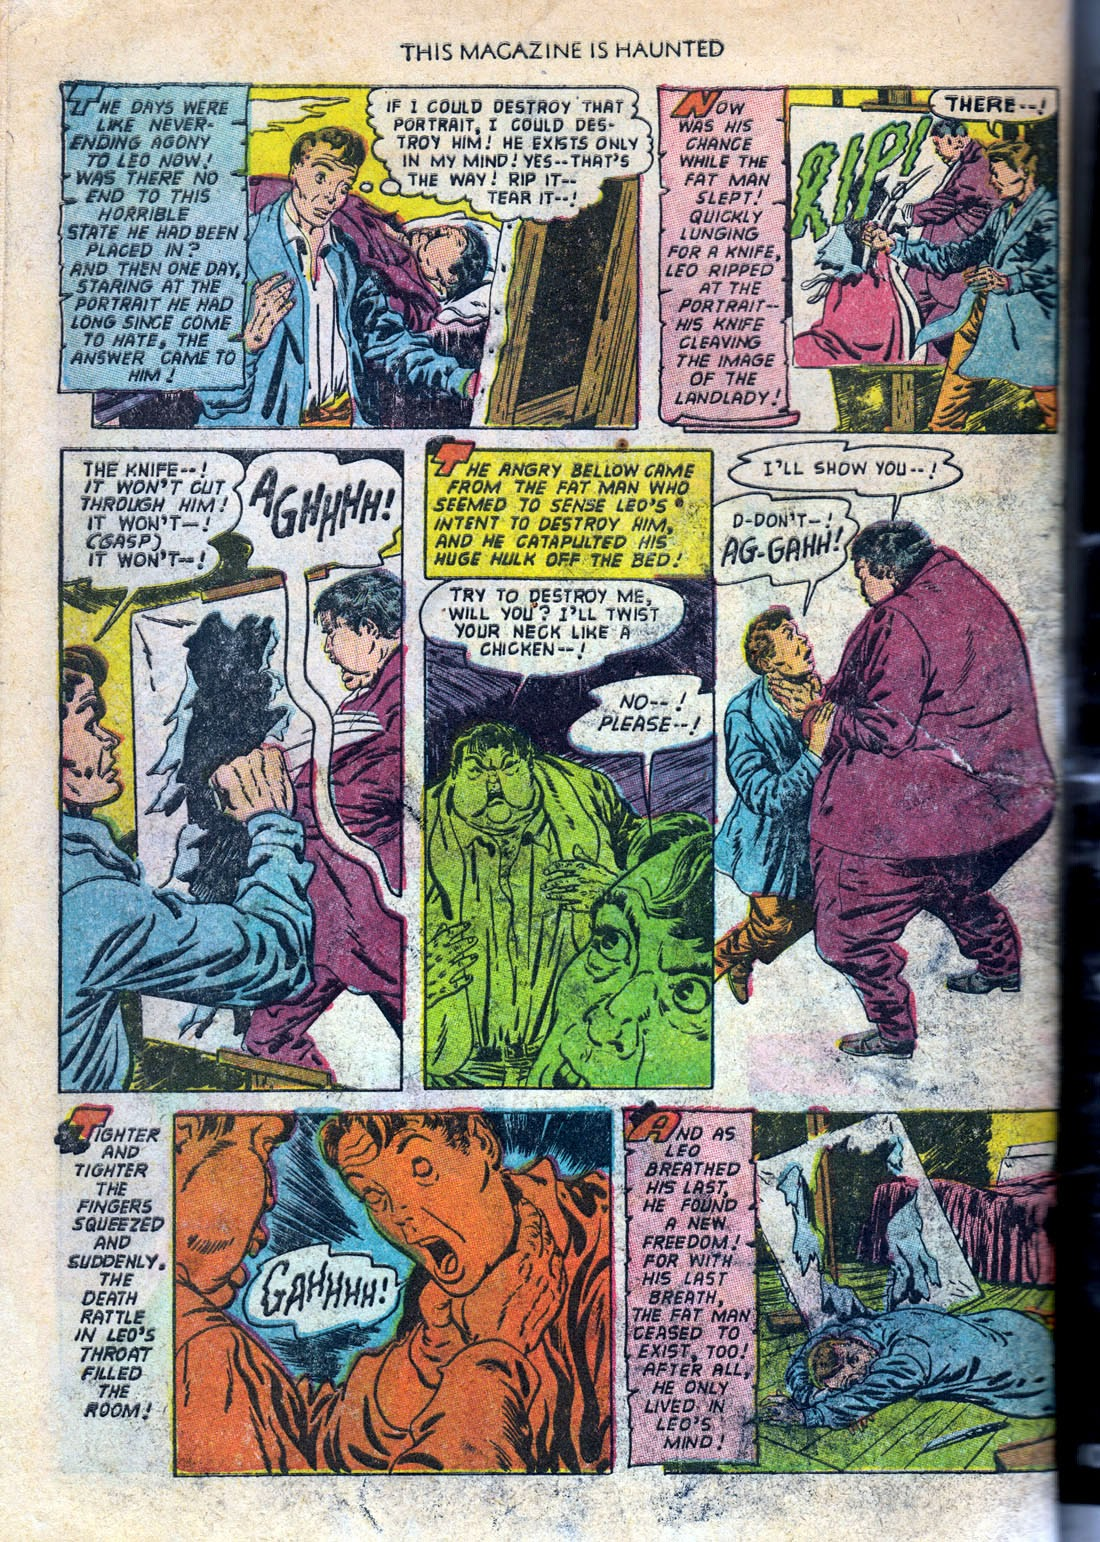 Read online This Magazine Is Haunted comic -  Issue #10 - 34